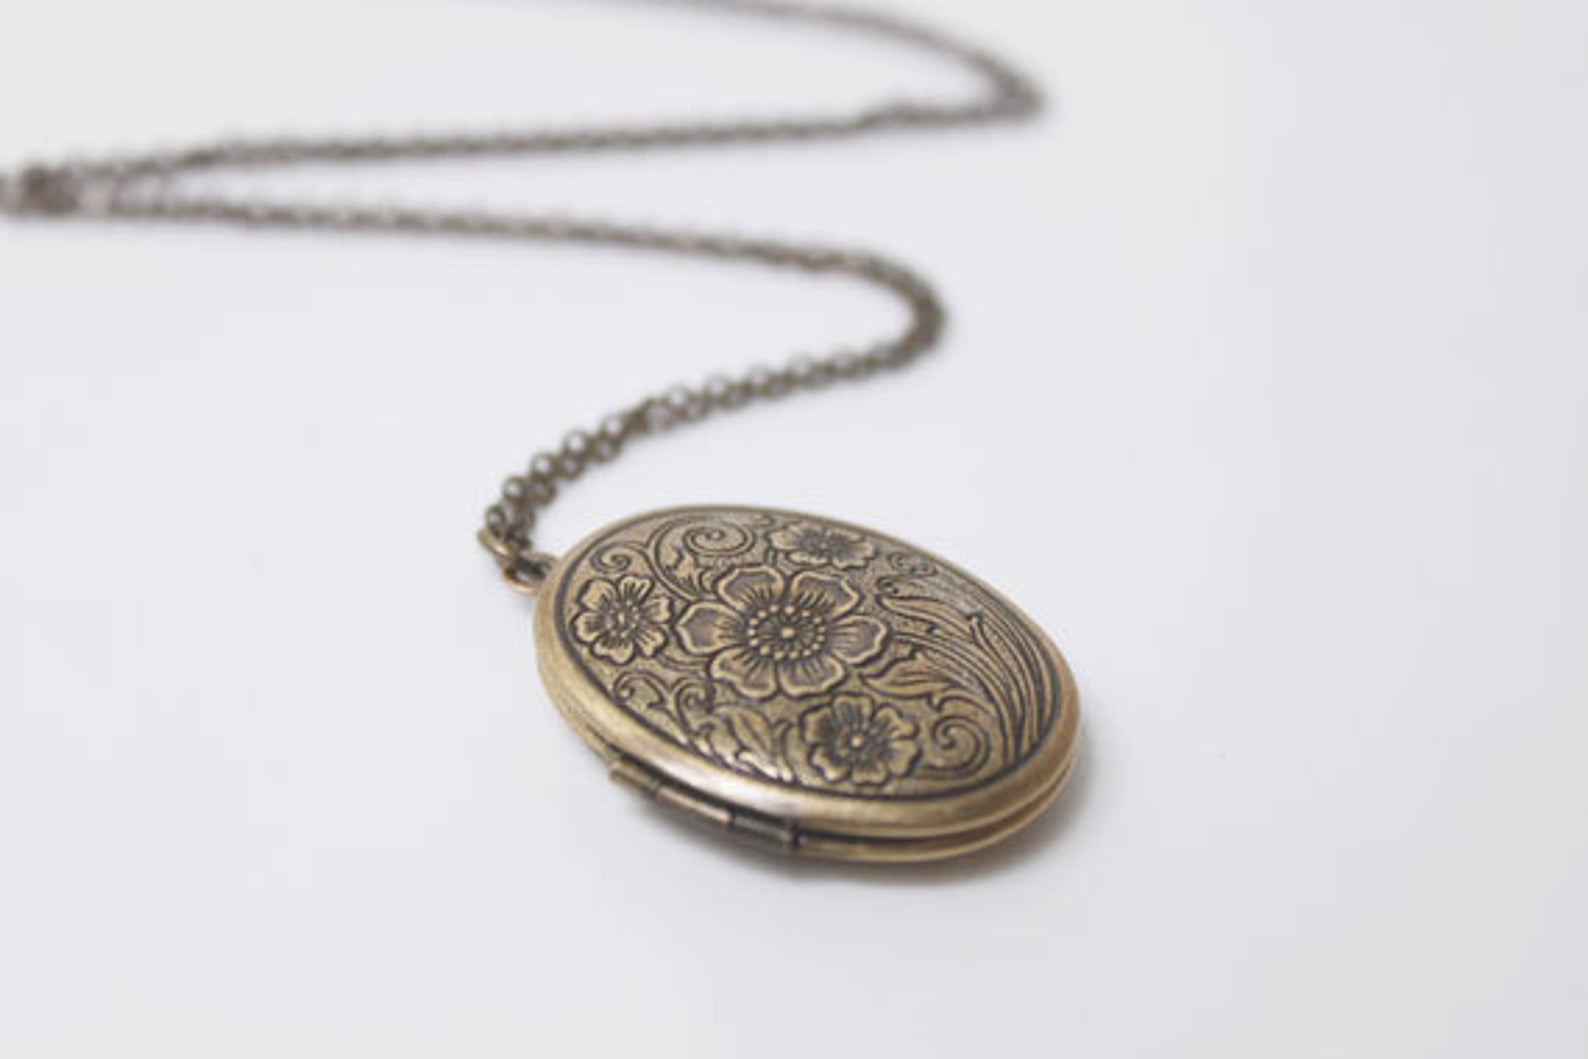 Gold locket necklace with flower etchings.